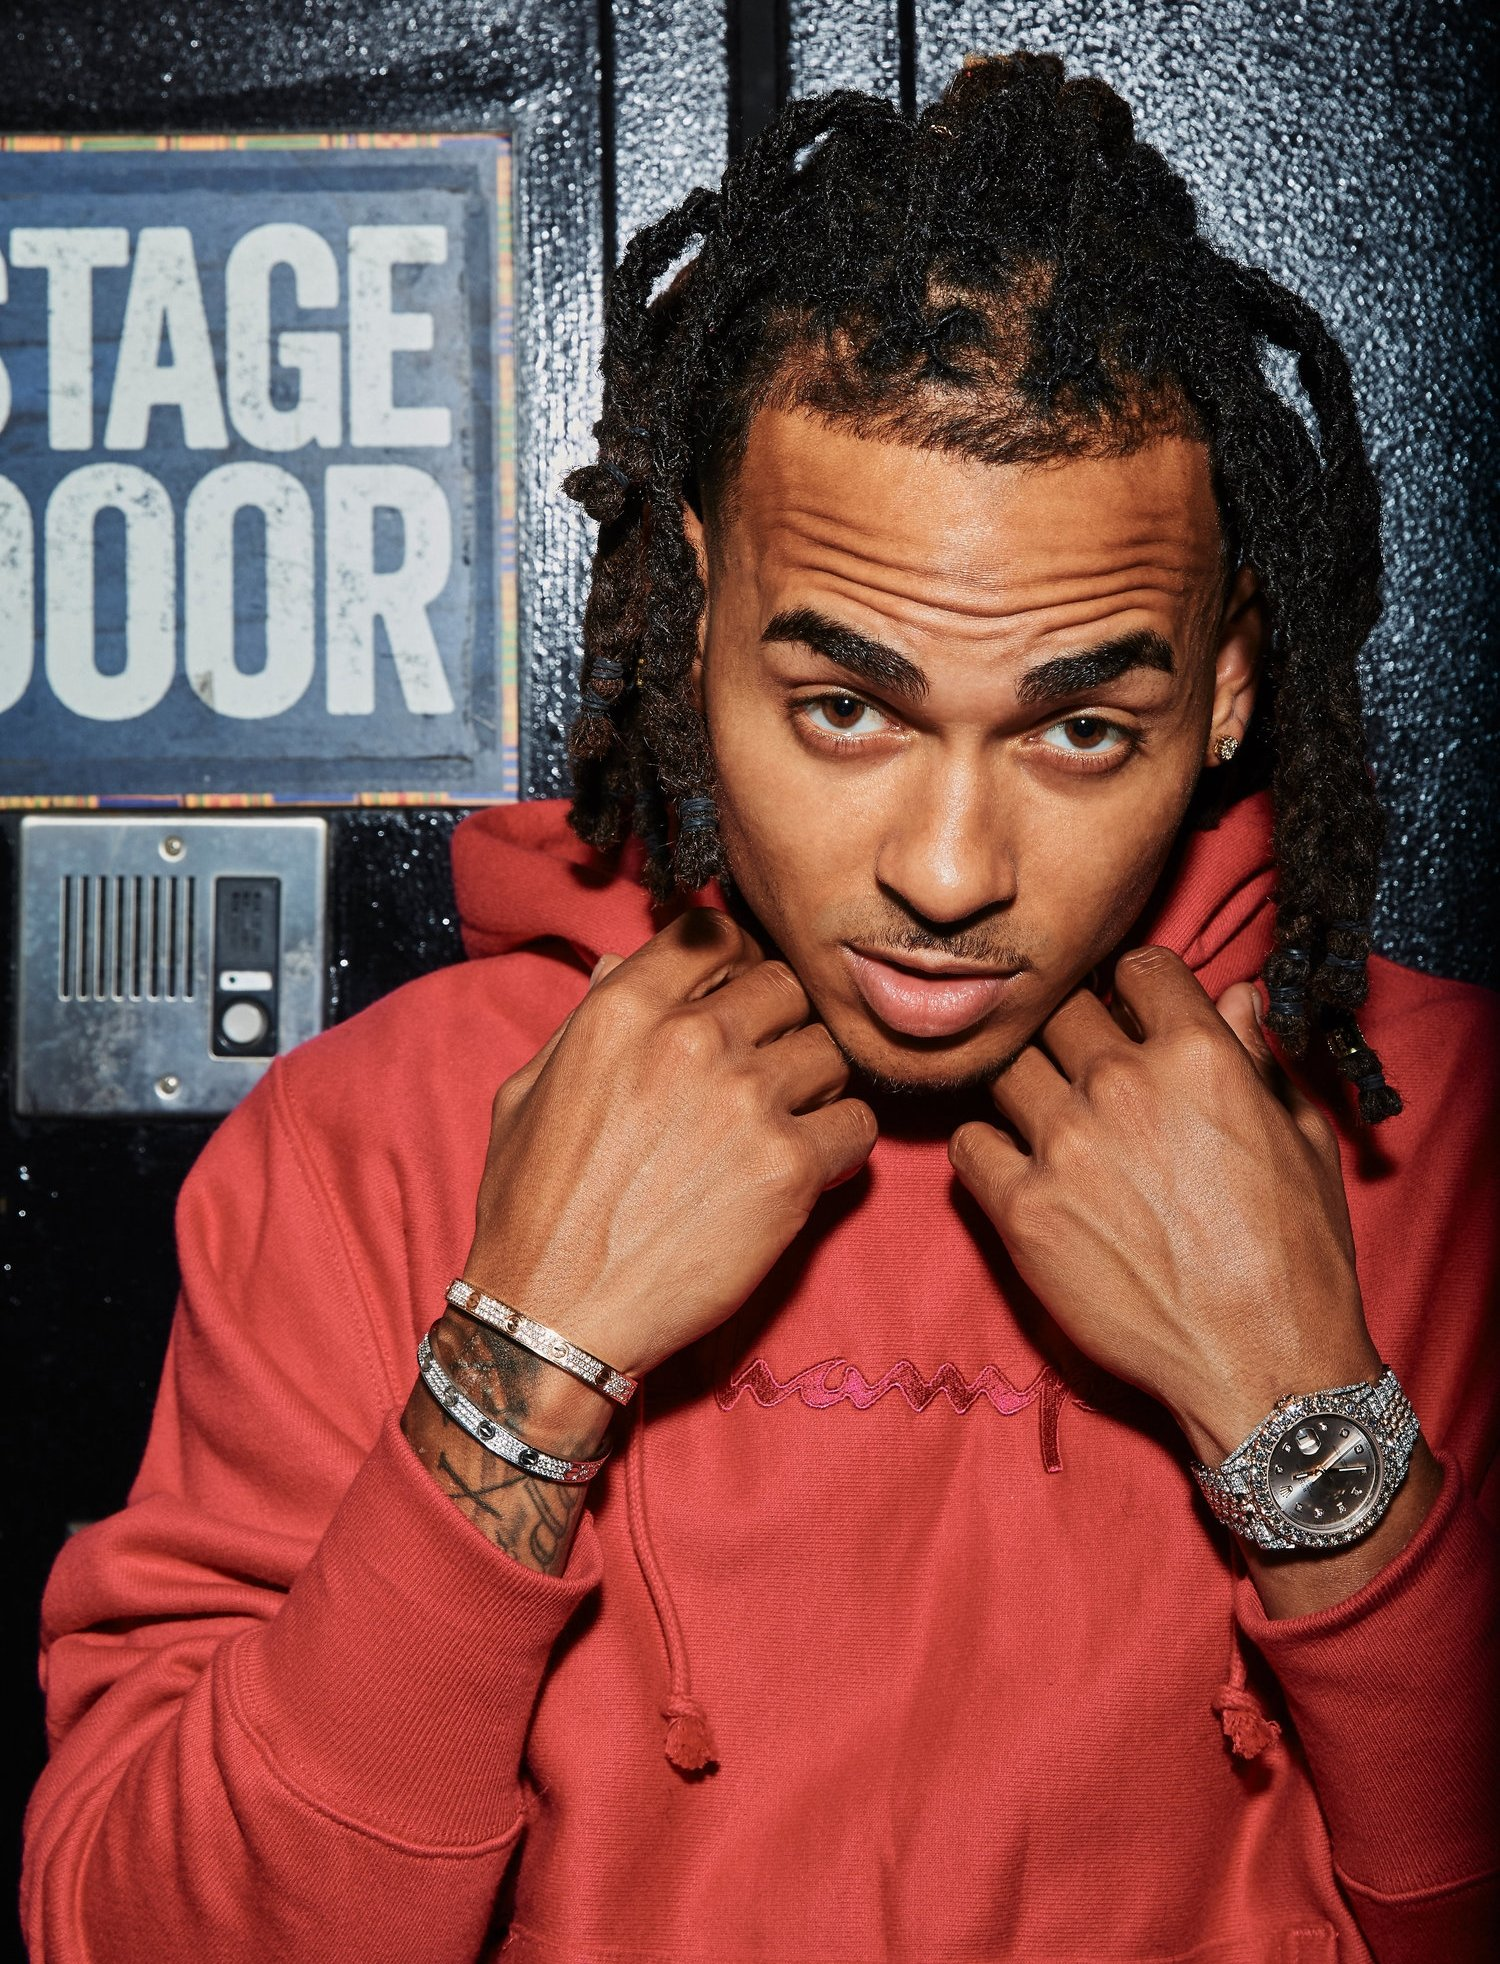 Your Home For Ozuna Tickets With Each Transaction 100 Verified And The Largest Inventory Of Tickets On The Web SeatGeek Is The Safe Choice For Tickets On The Web